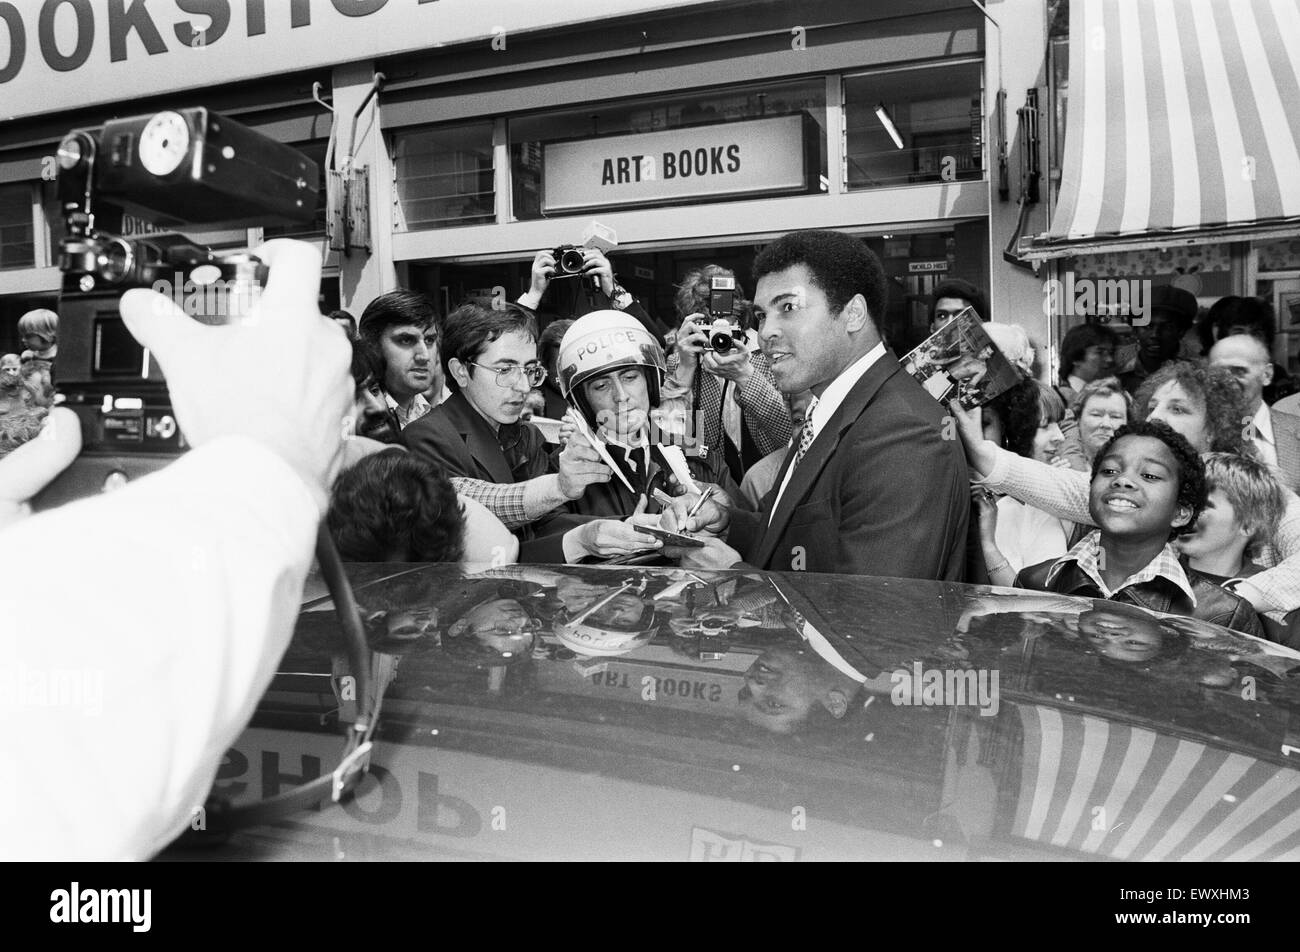 Muhammad Ali signing autographs outside the Odeon in Birmingham. 7th June 1979 - Stock Image